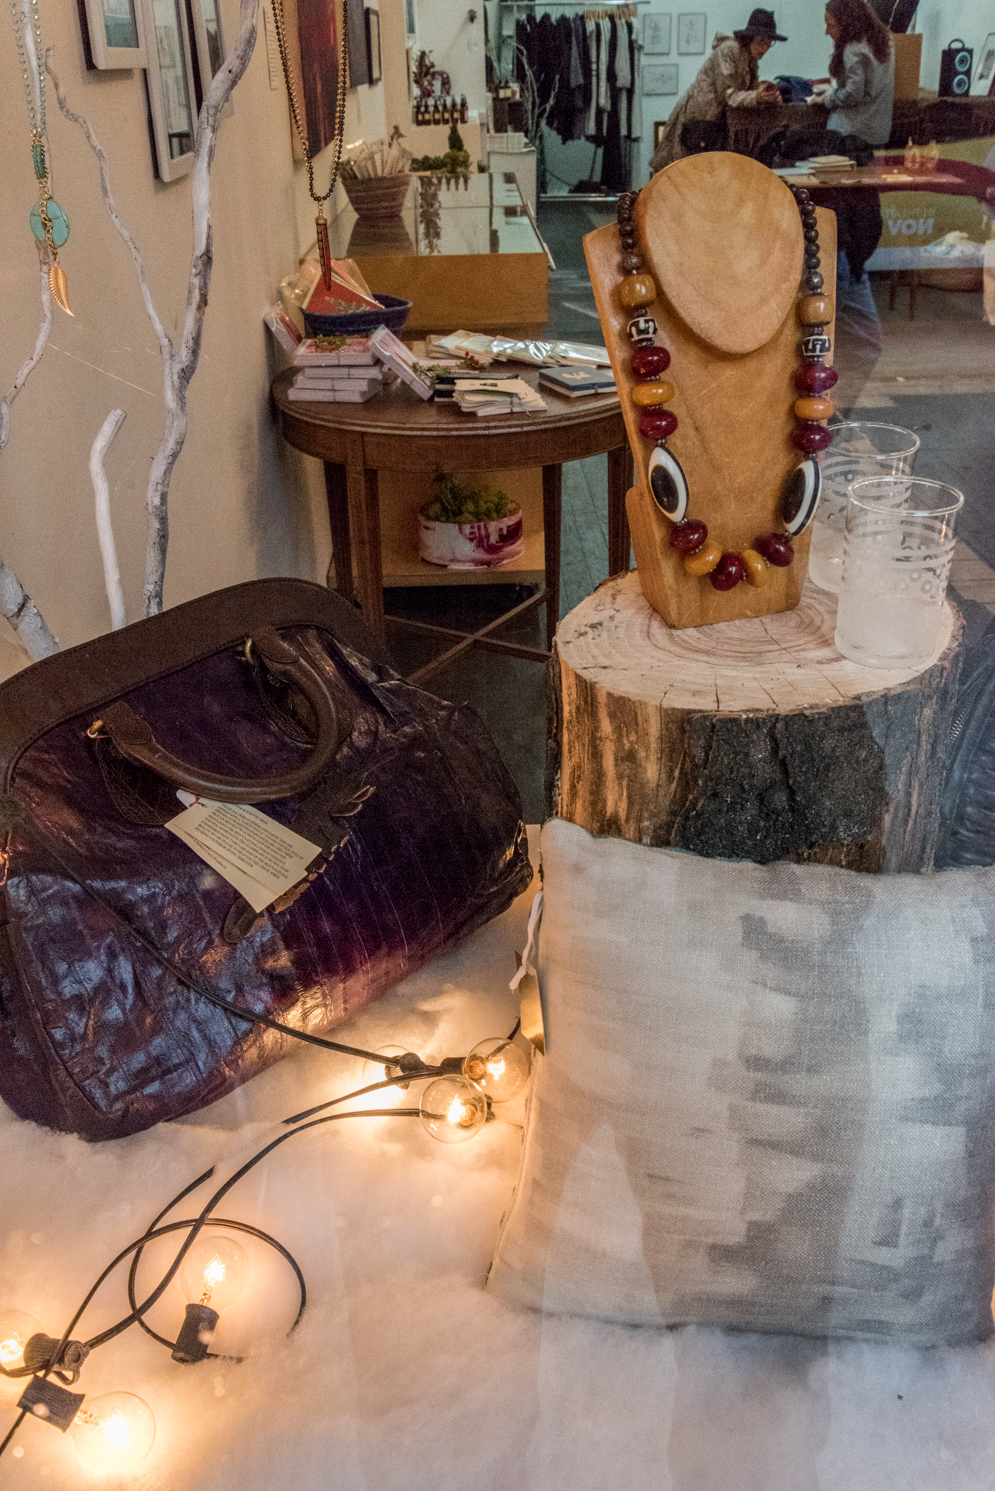 ROCK MAMA NYC LIFESTYLE BLOG - LOWER EAST SIDE HOLIDAY POP-UP